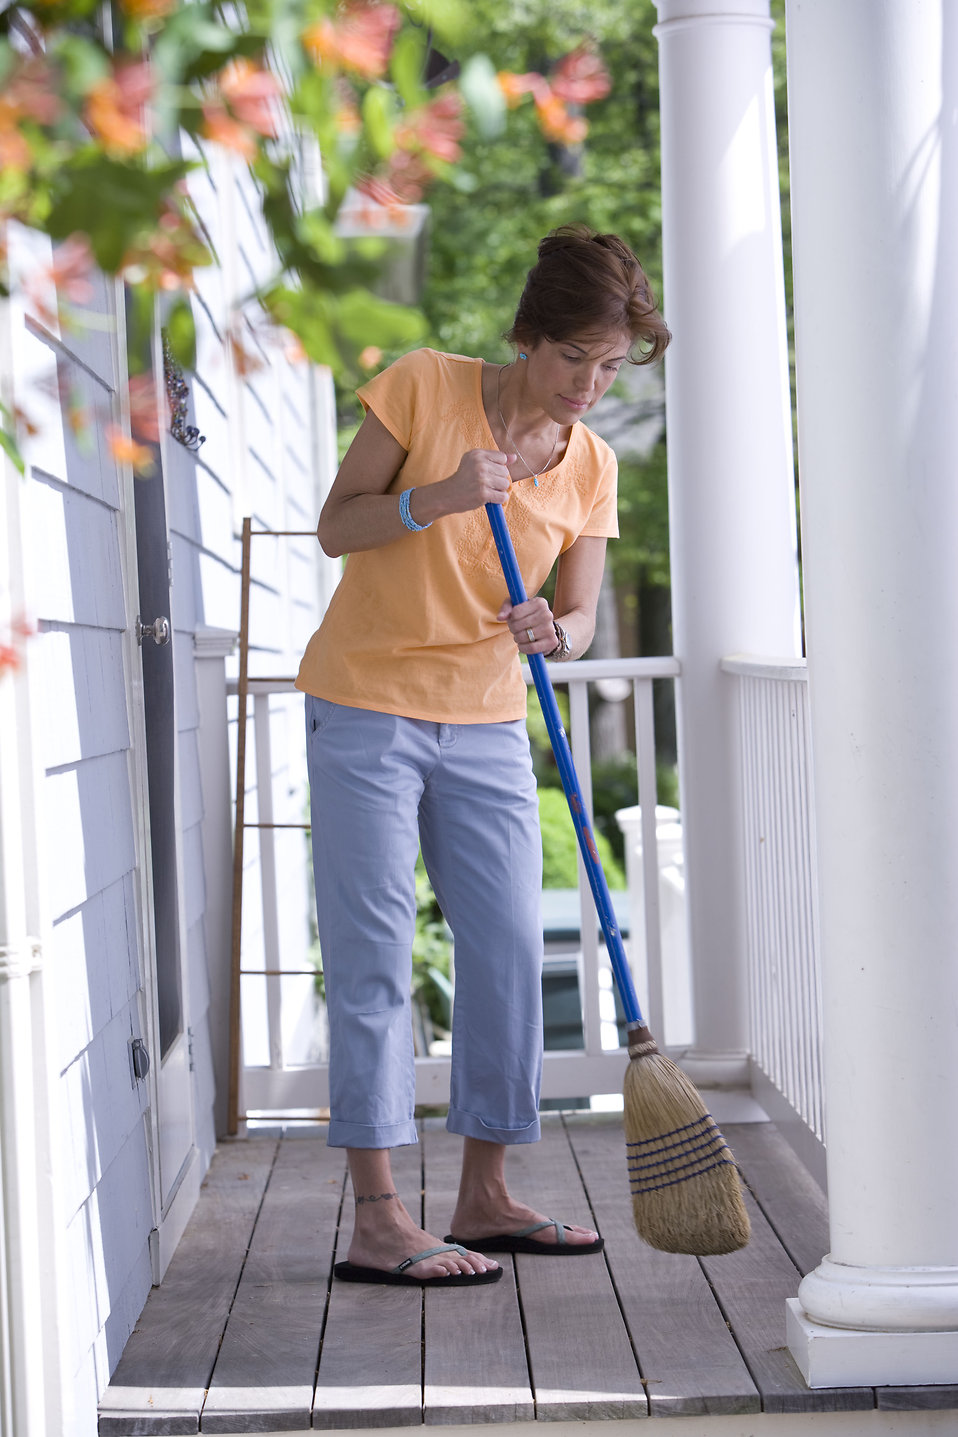 A woman sweeping her front porch : Free Stock Photo